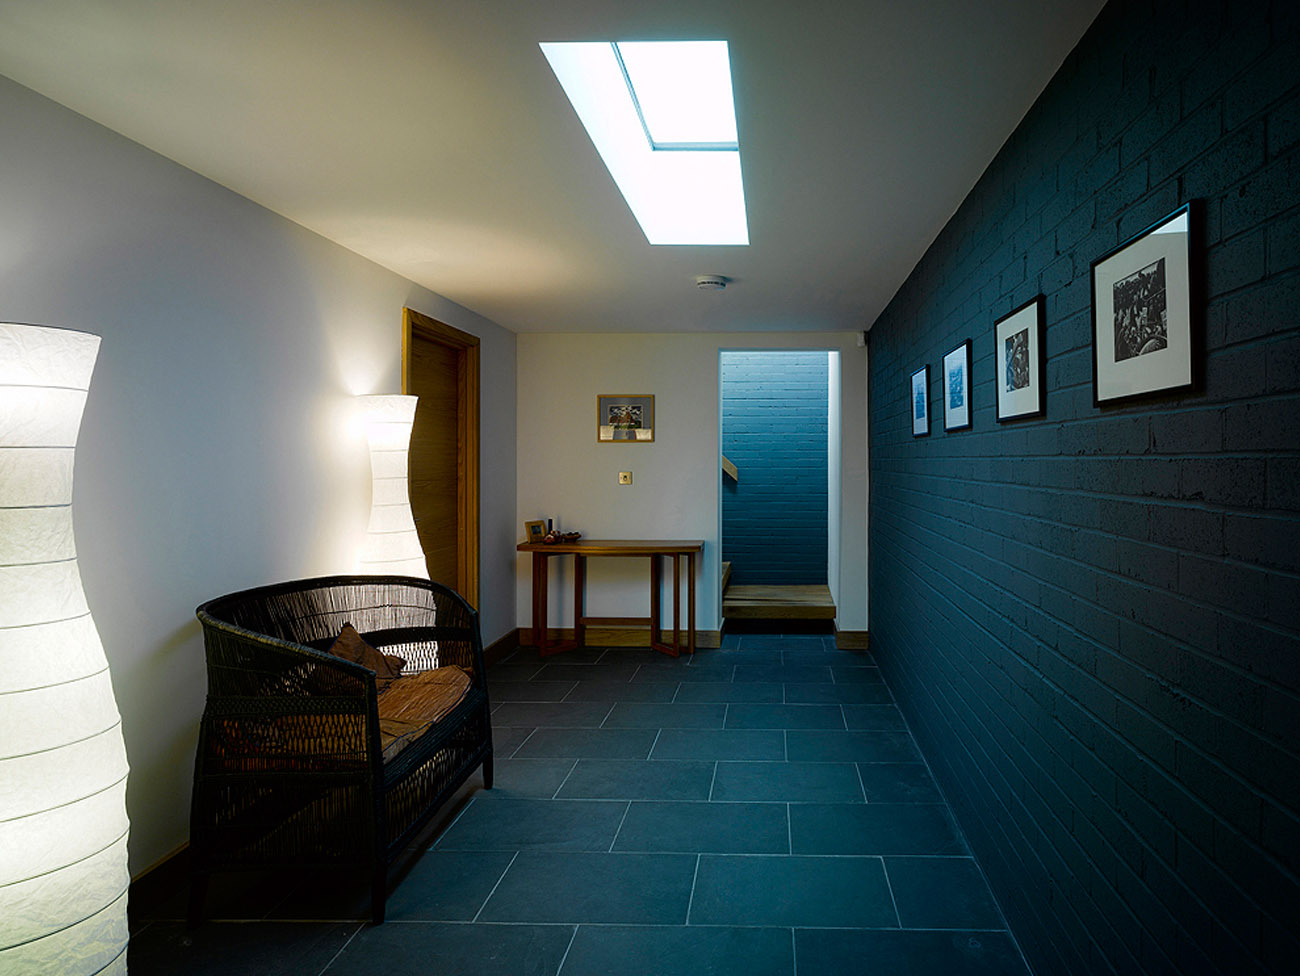 Rooflights bring natural light into a subterranean space.